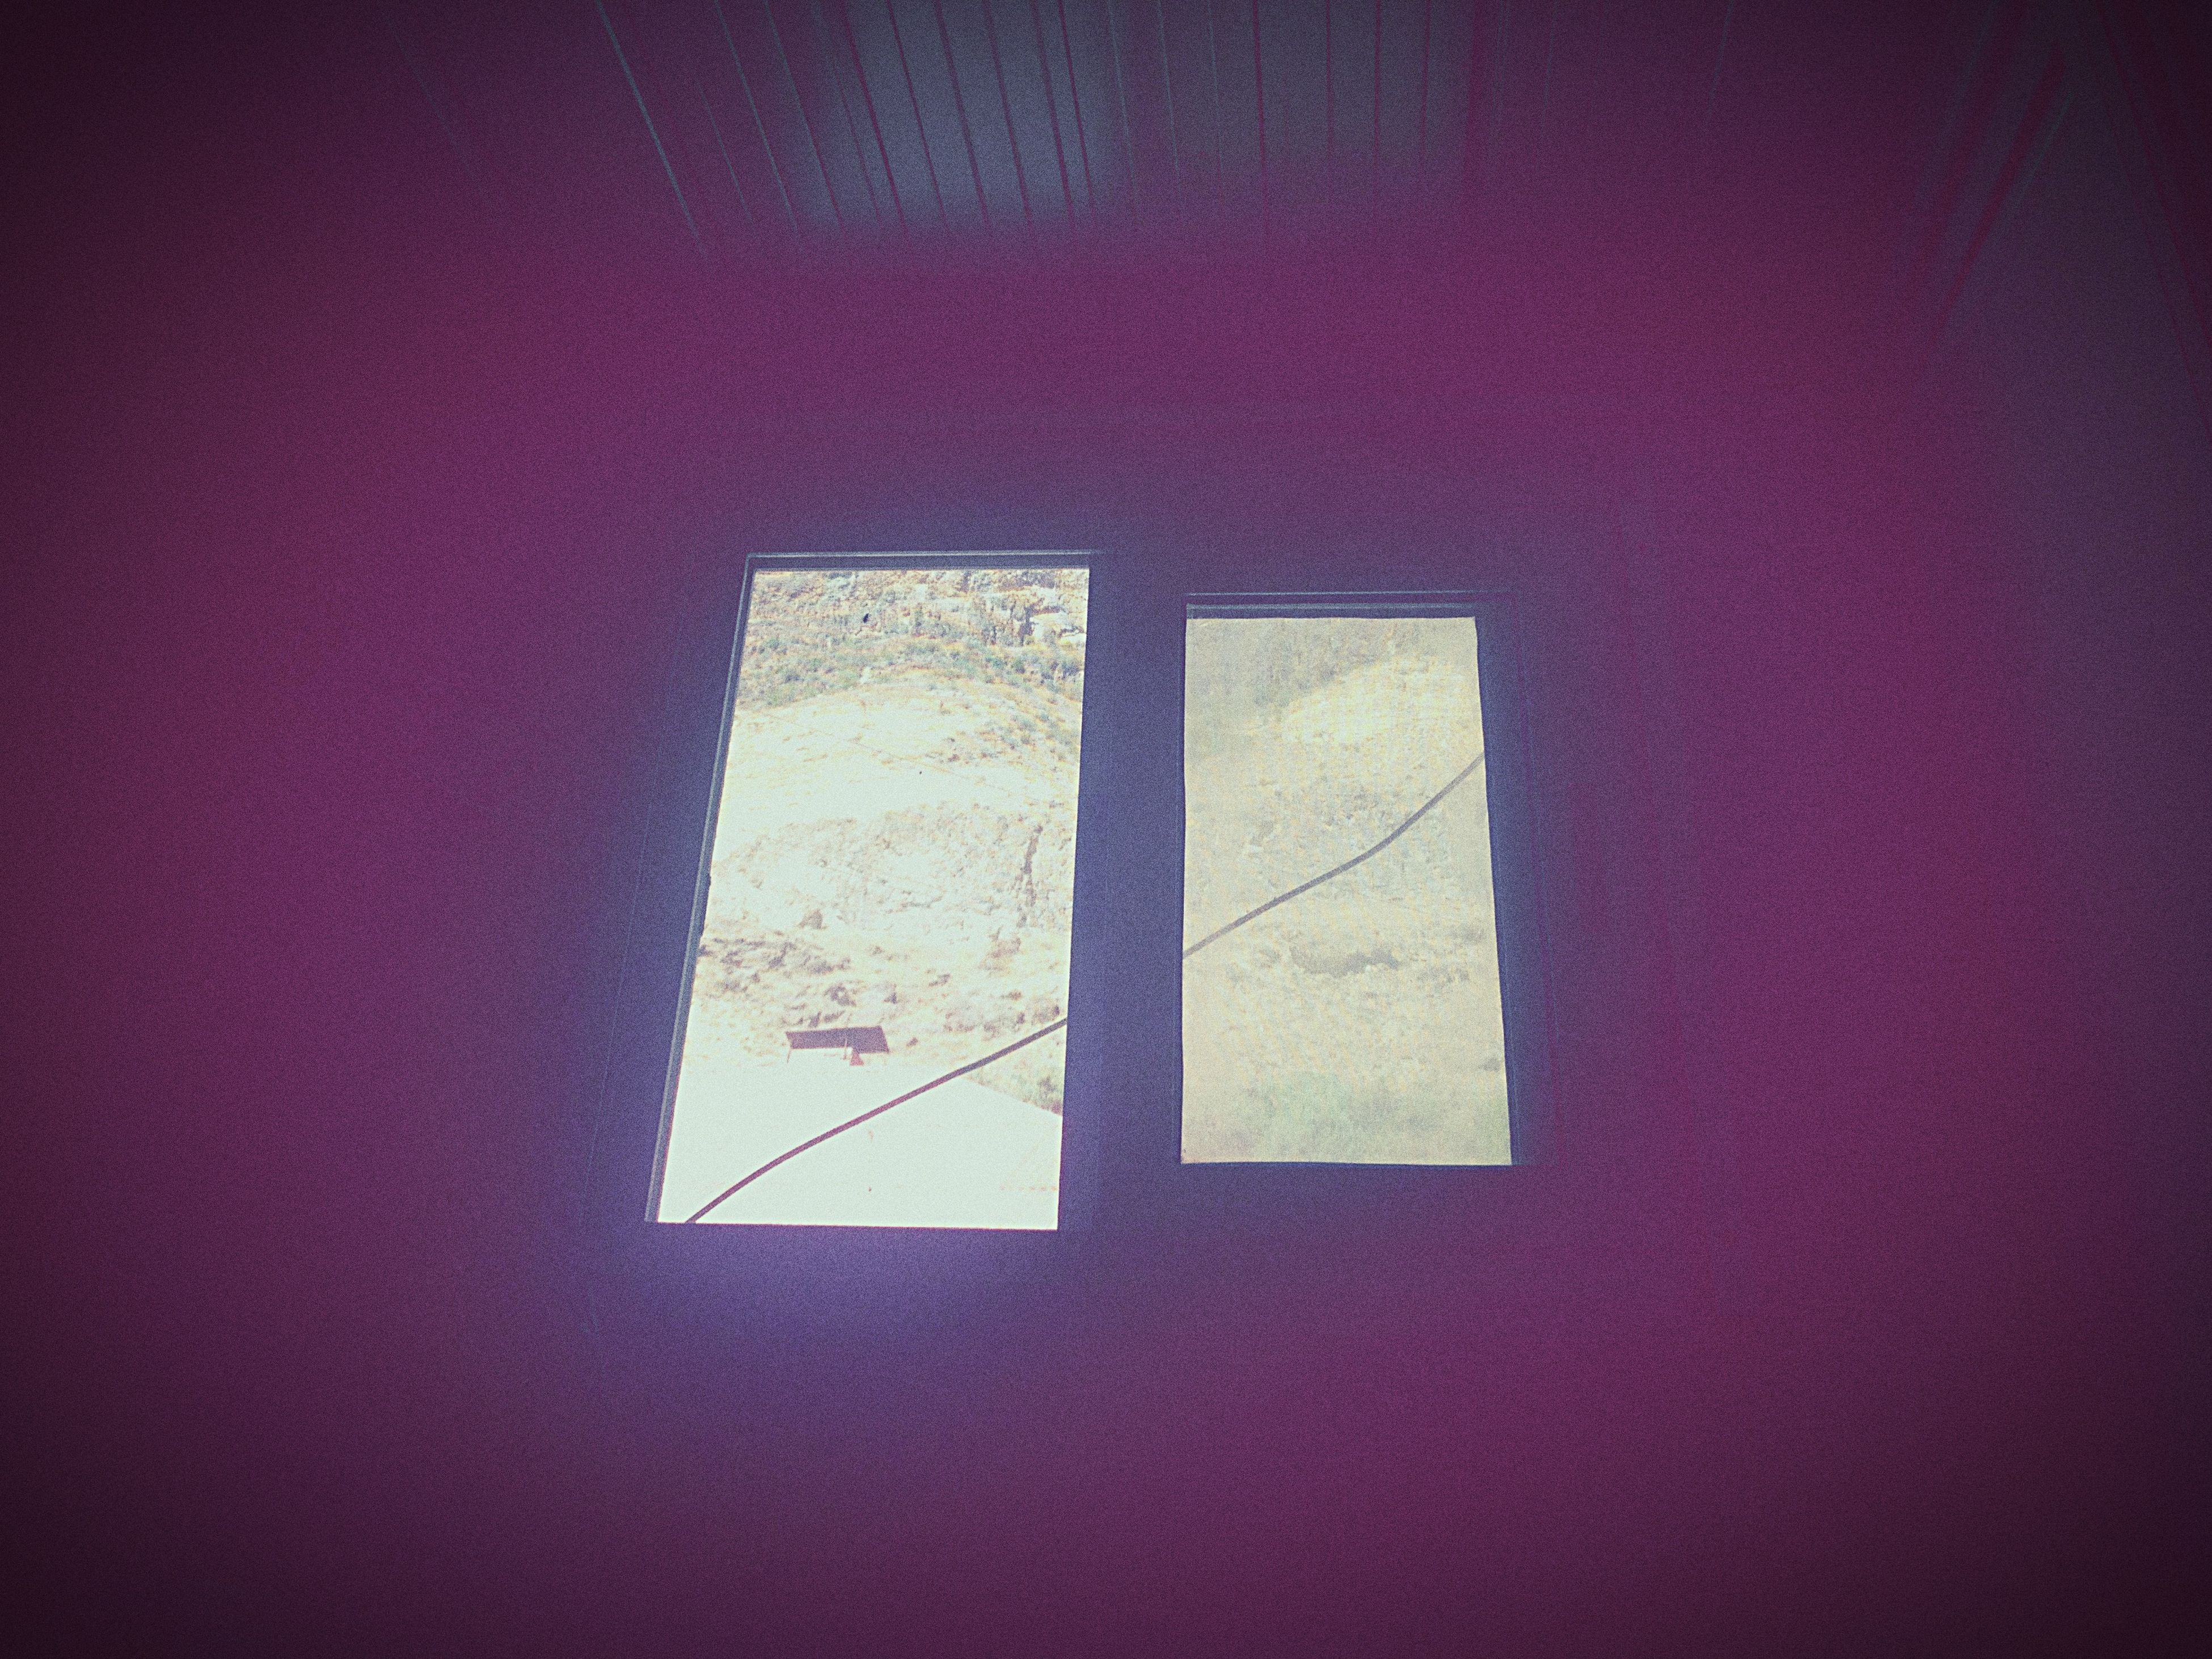 indoors, wall - building feature, architecture, built structure, wall, shadow, window, copy space, paper, no people, home interior, red, close-up, still life, high angle view, table, sunlight, house, day, geometric shape